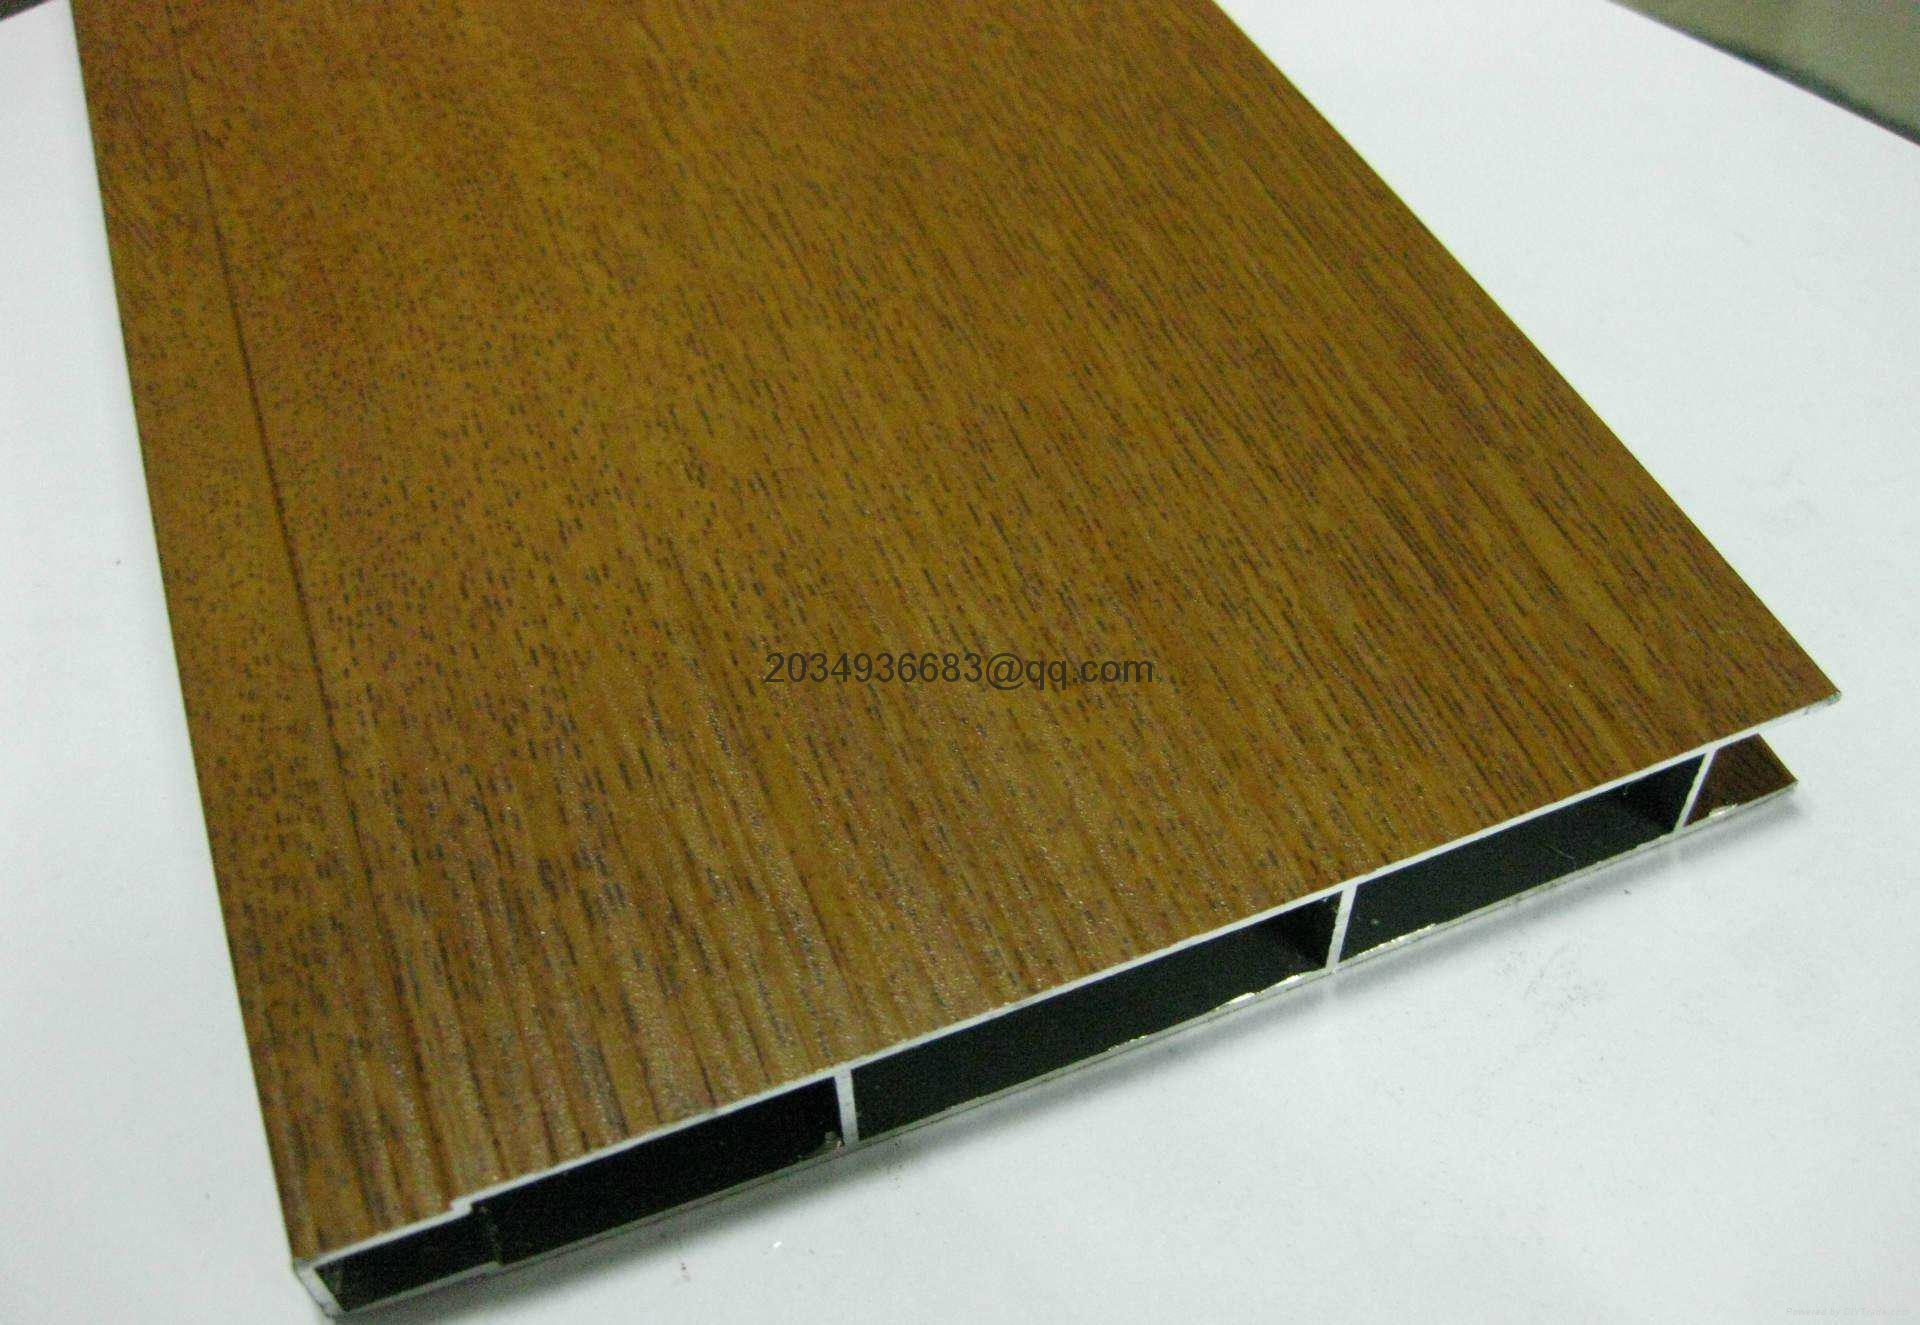 OEM T5 extruded coated wooden partern aluminum profile 10